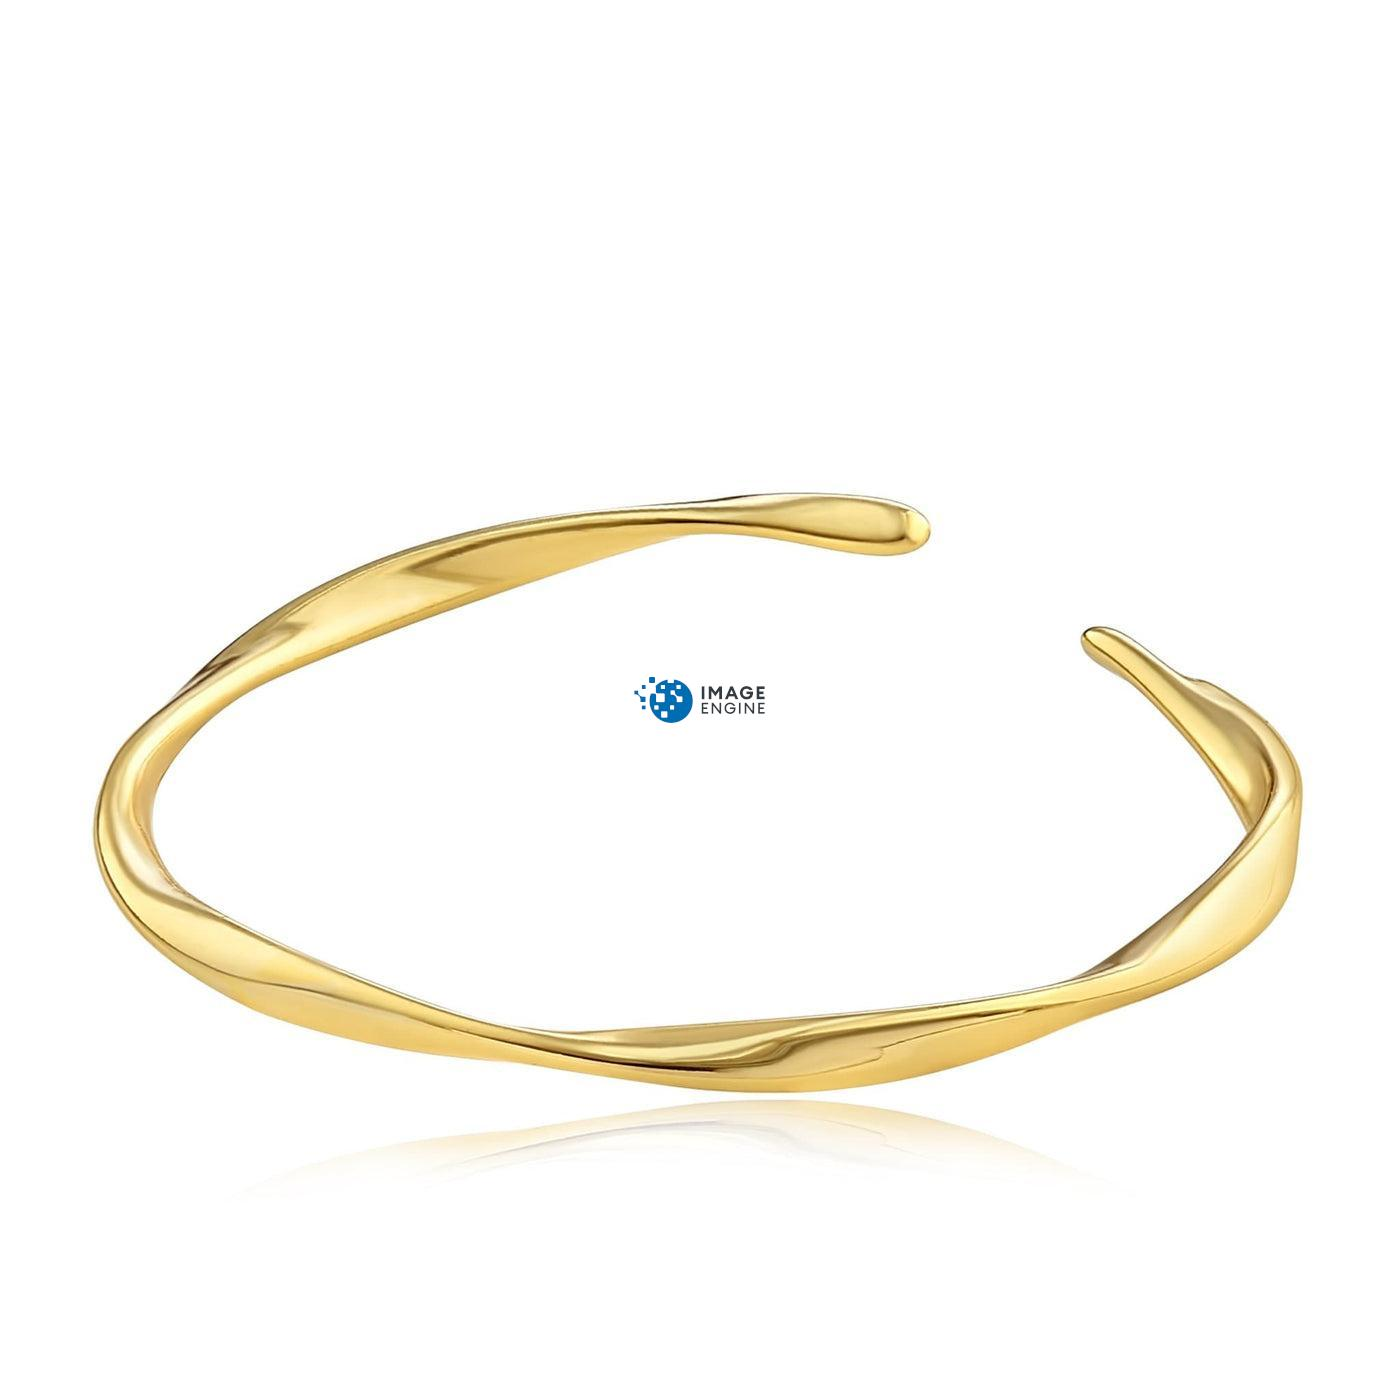 Olivia Twist Ring - Front View Facing Down - 18K Yellow Gold Vermeil